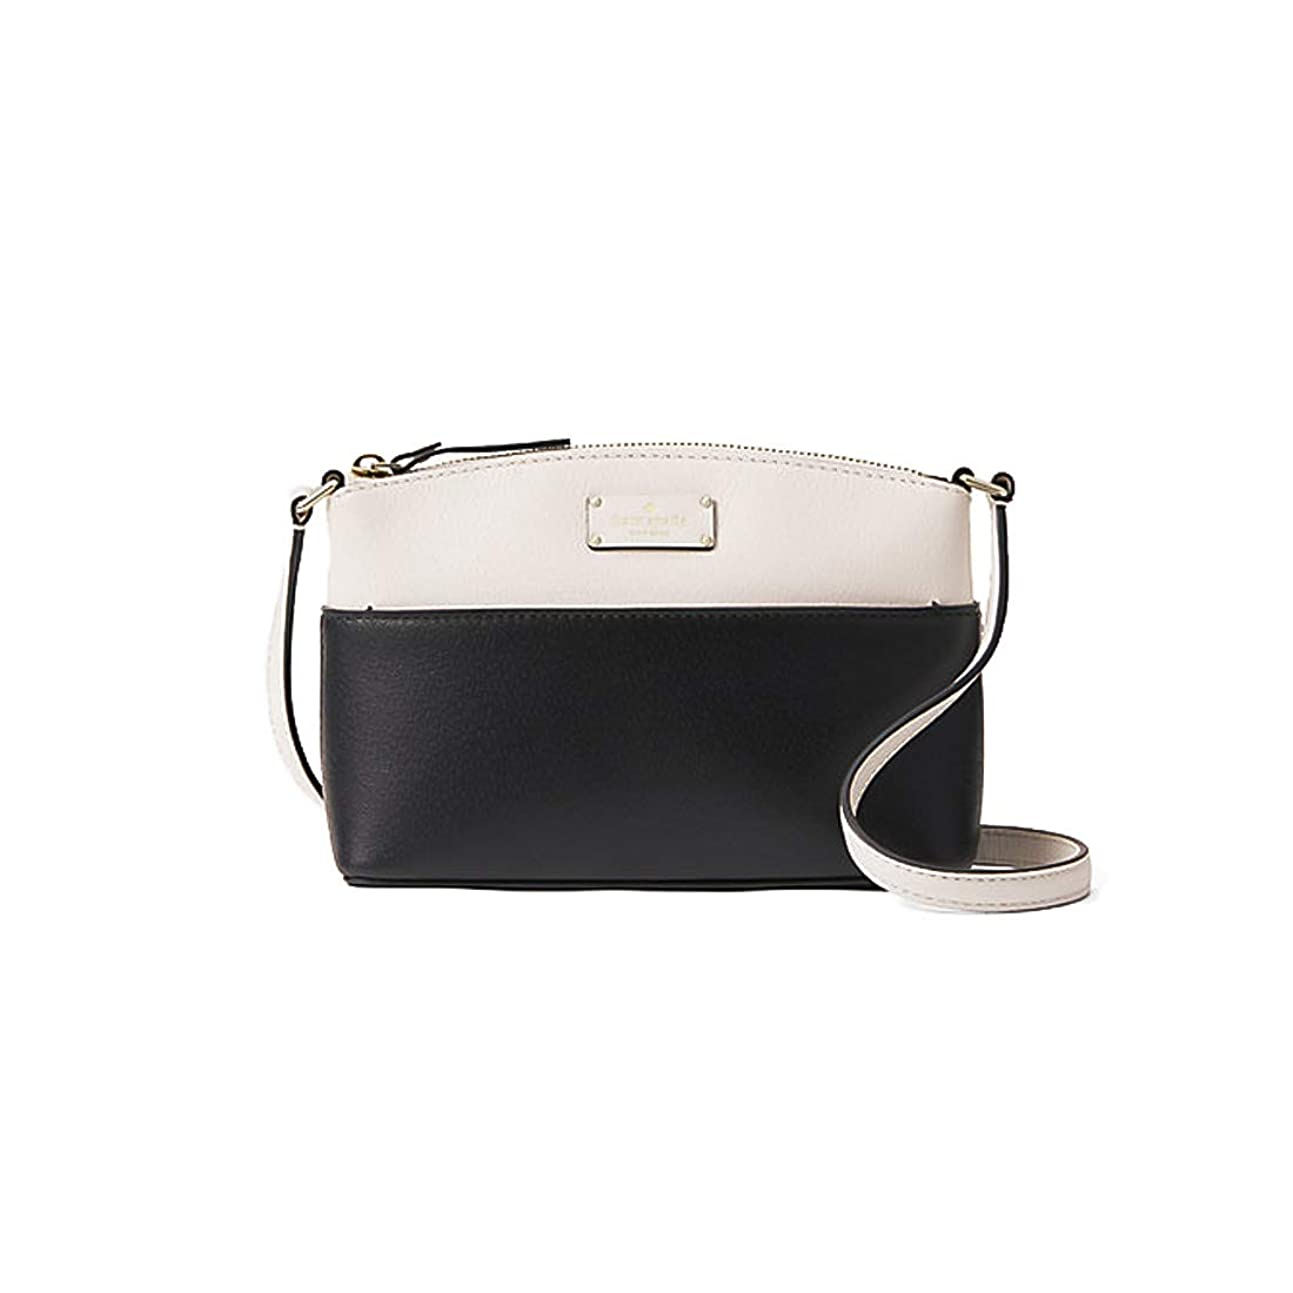 名詞子音フリンジkate spade GROVE STREET MILLIE WKRU4194 BLACK/CEMENT(091) [並行輸入品]